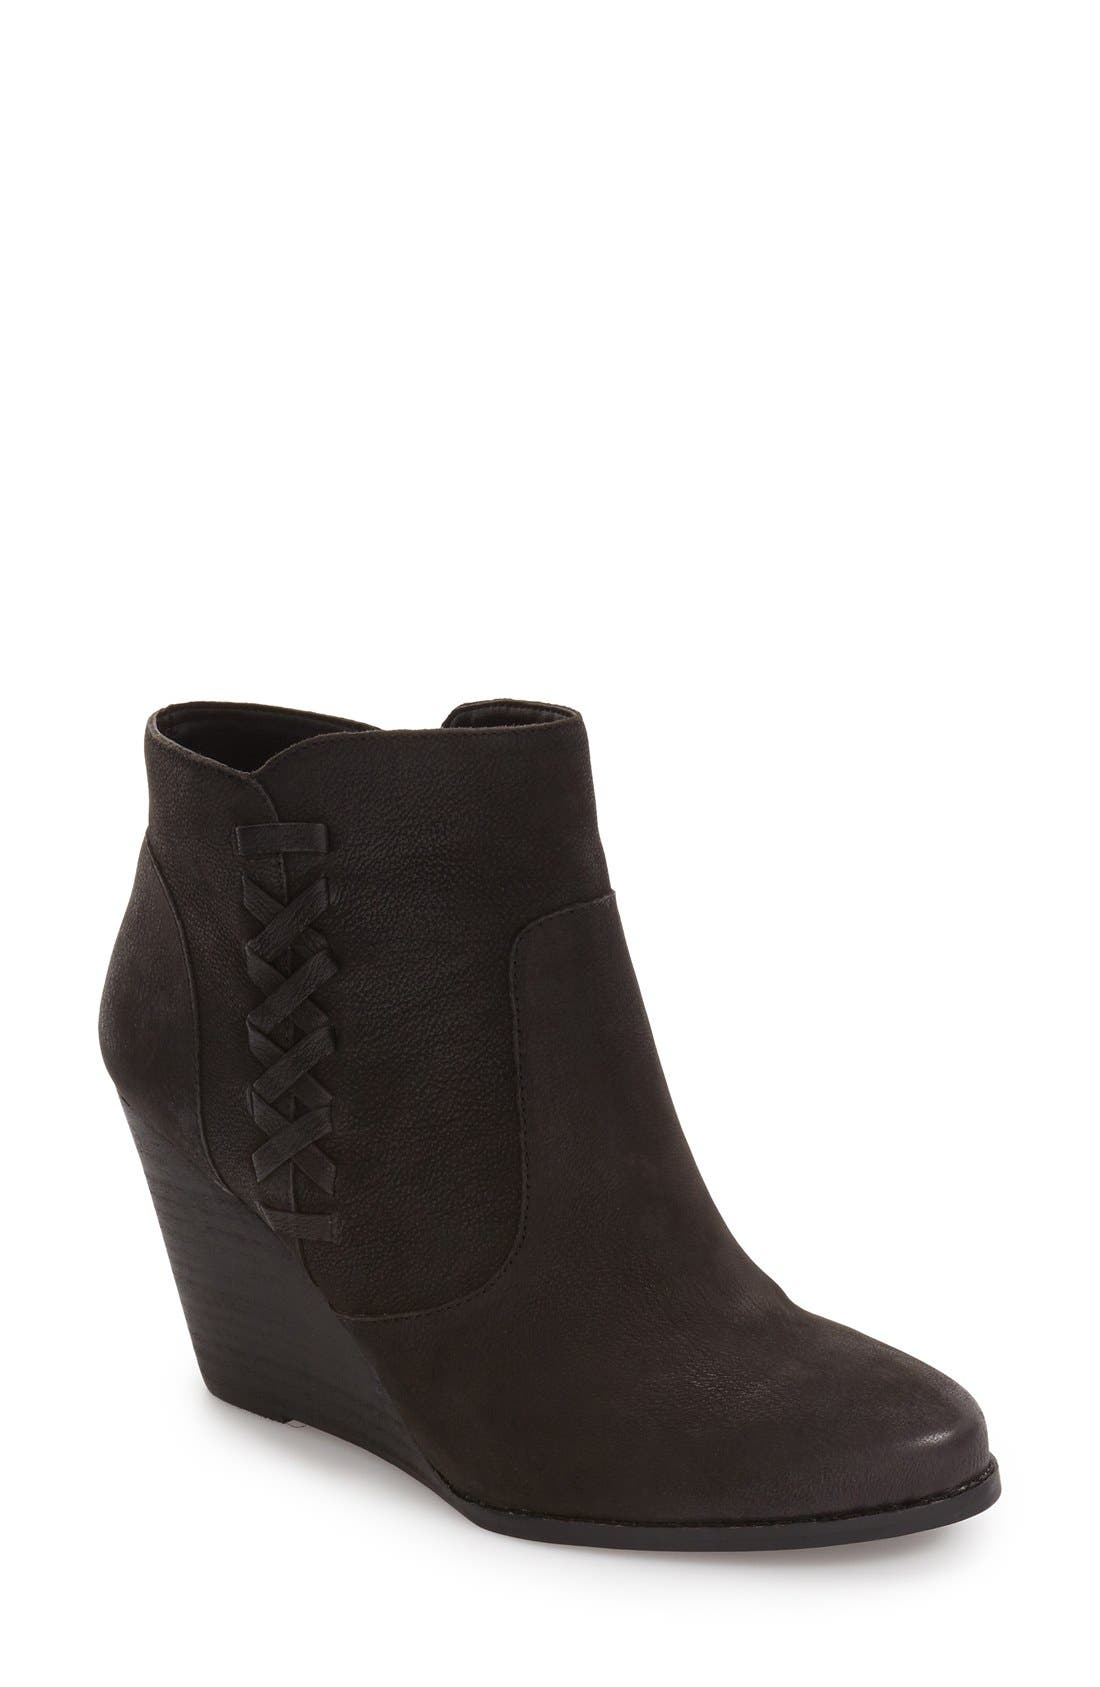 Alternate Image 1 Selected - Jessica Simpson Charee Wedge Bootie (Women)